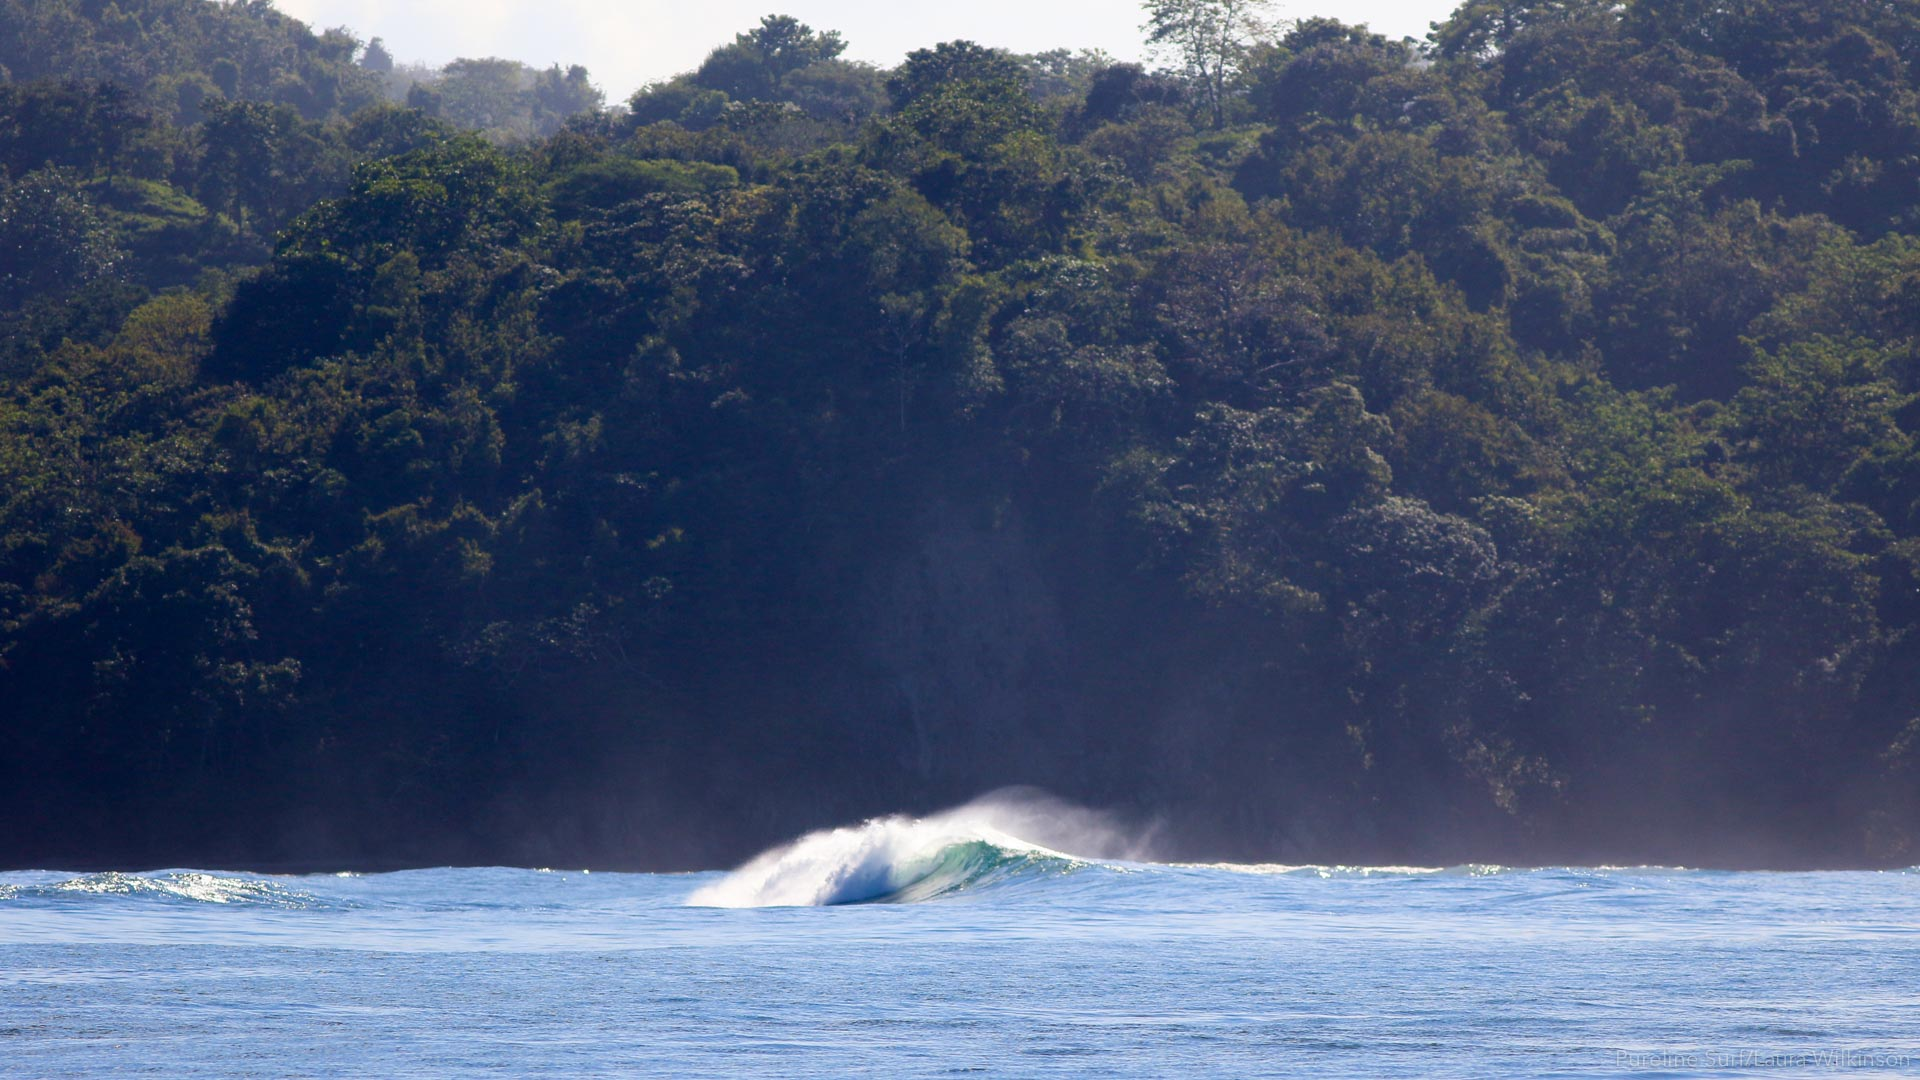 A peeling left-hand reef break with jungle in the background, one of Pureline's coaching locations.